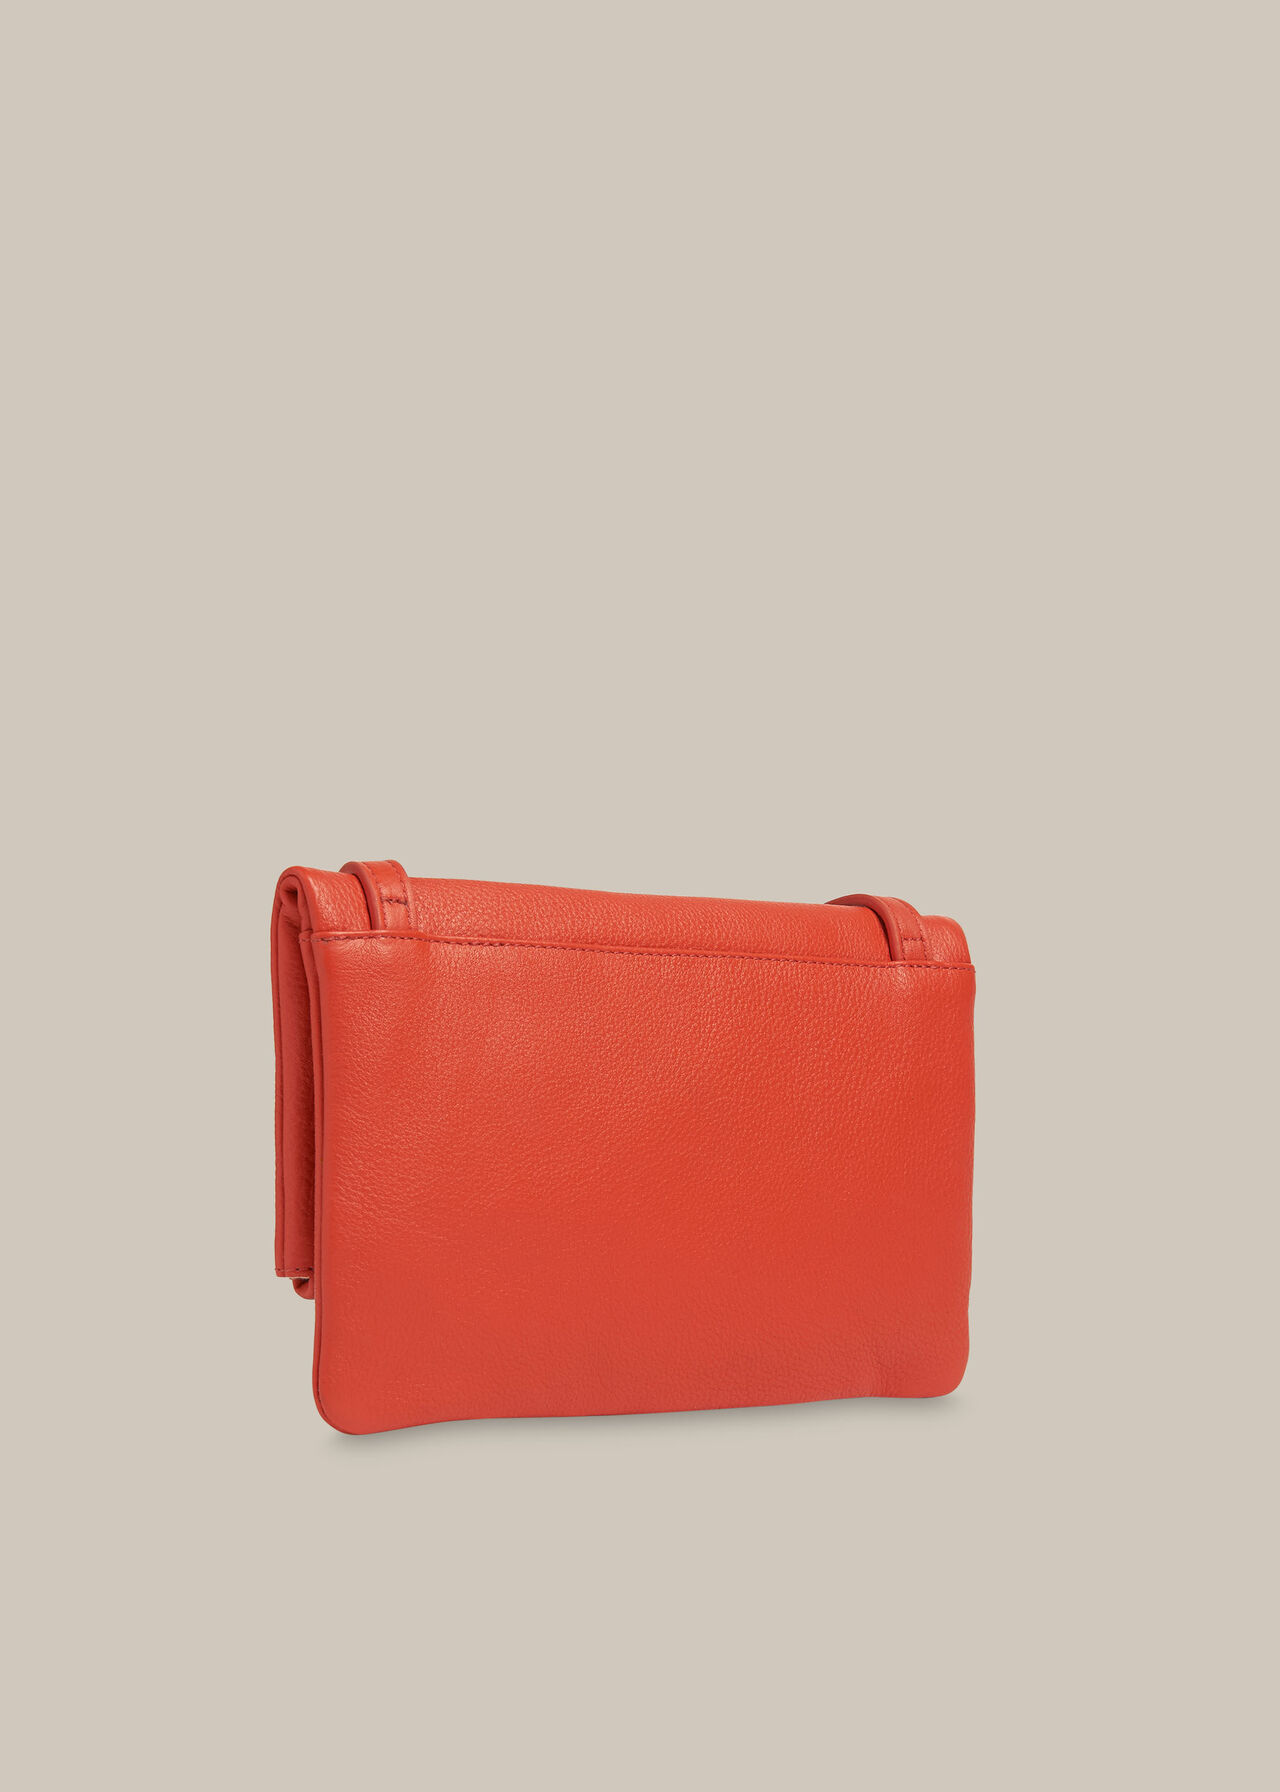 Issy Mini Foldover Bag Coral